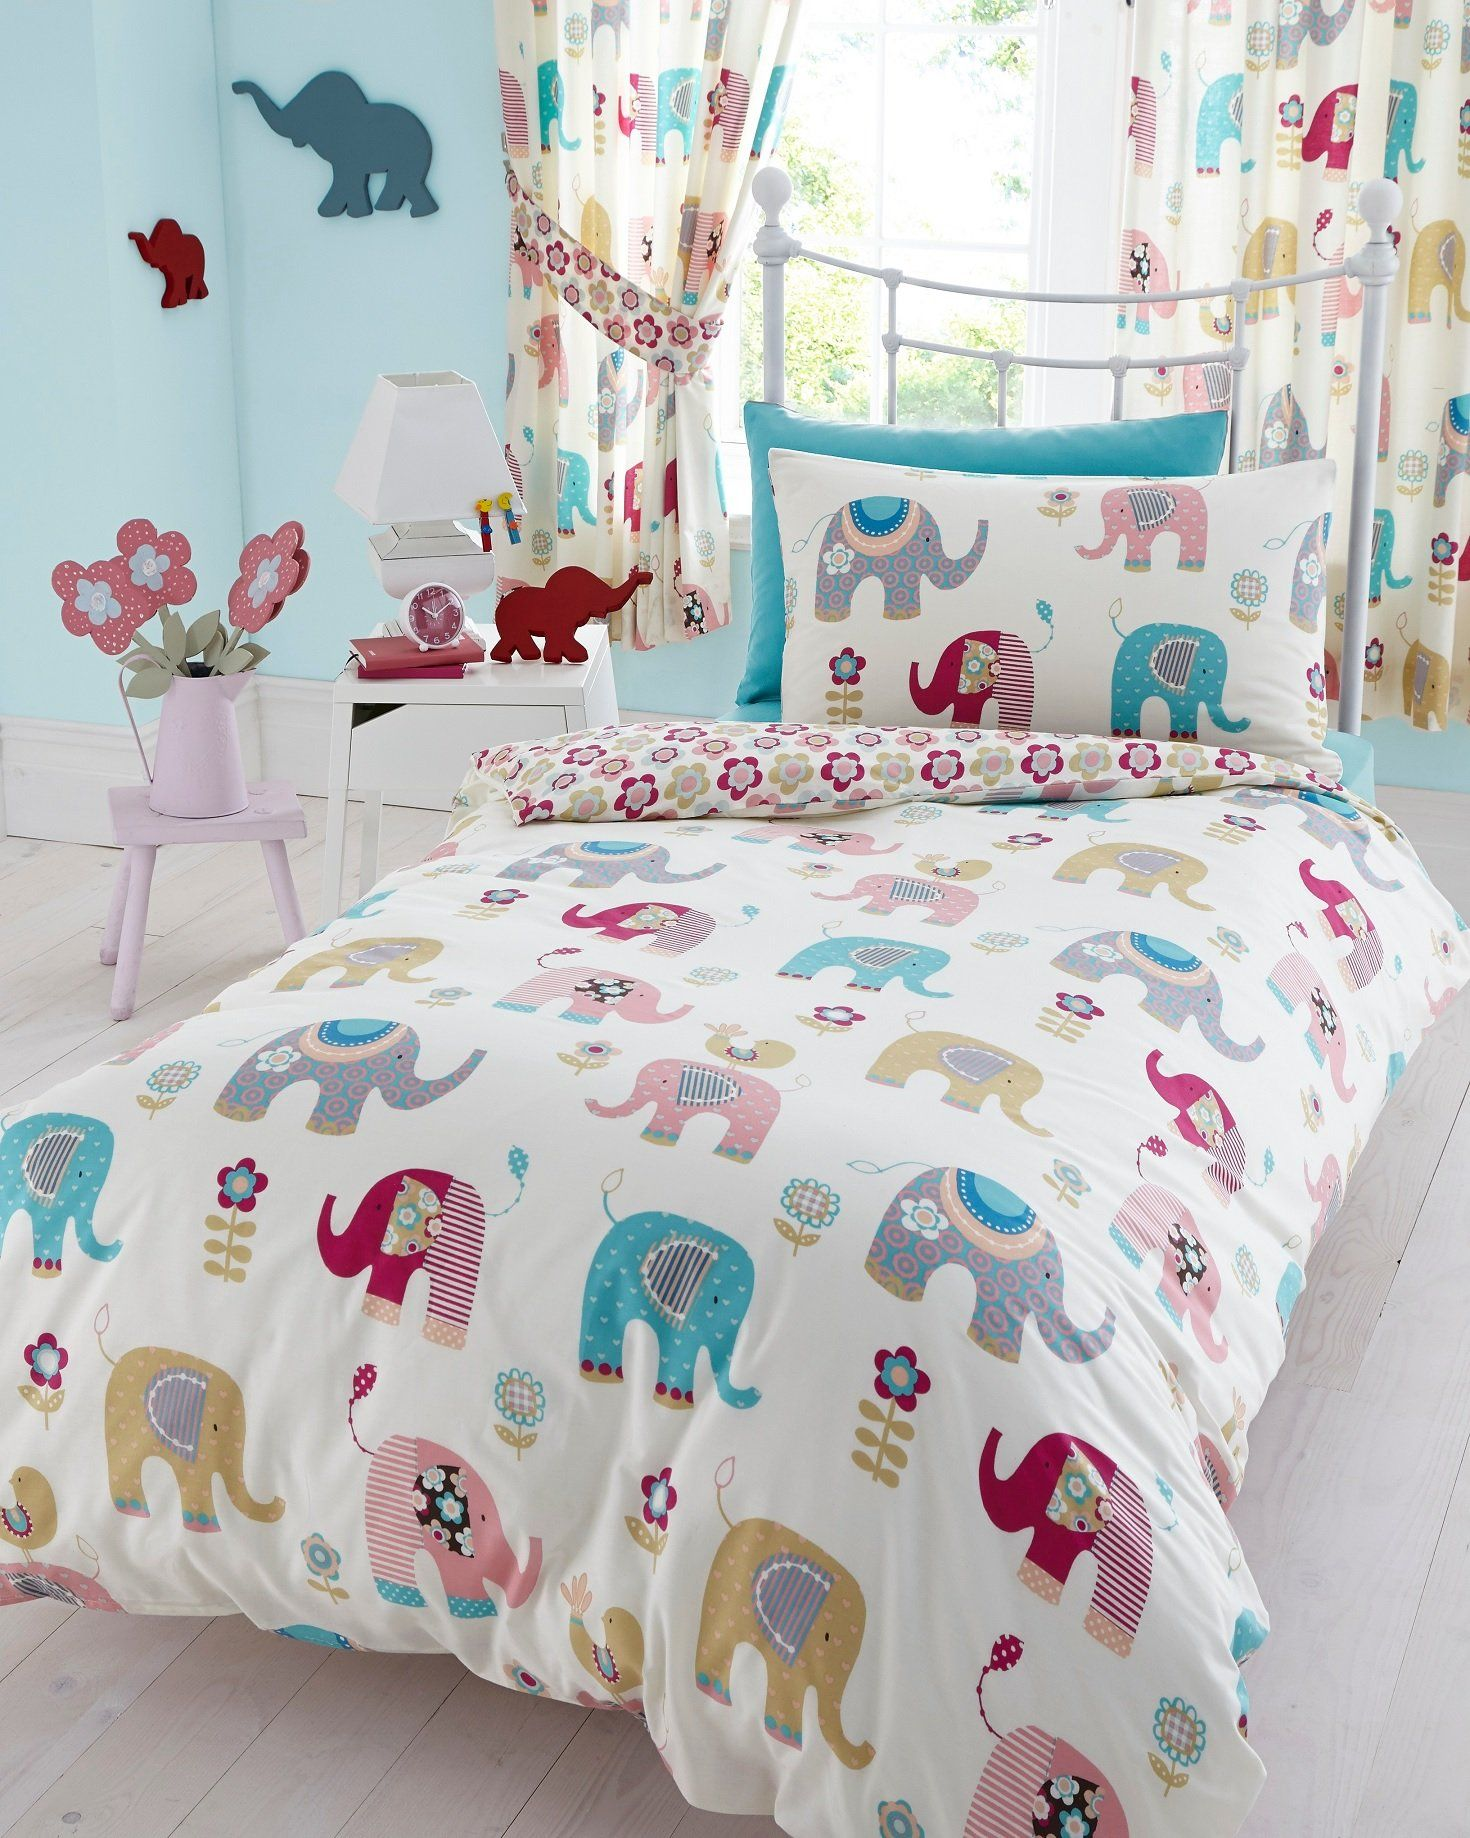 66 X 72 Jumbo Curtains Elephants Nellie Pink Blue Grey Green Flowers Elephant Duvet CoverElephant QuiltSingle CoverDuvet Cover SetsKids